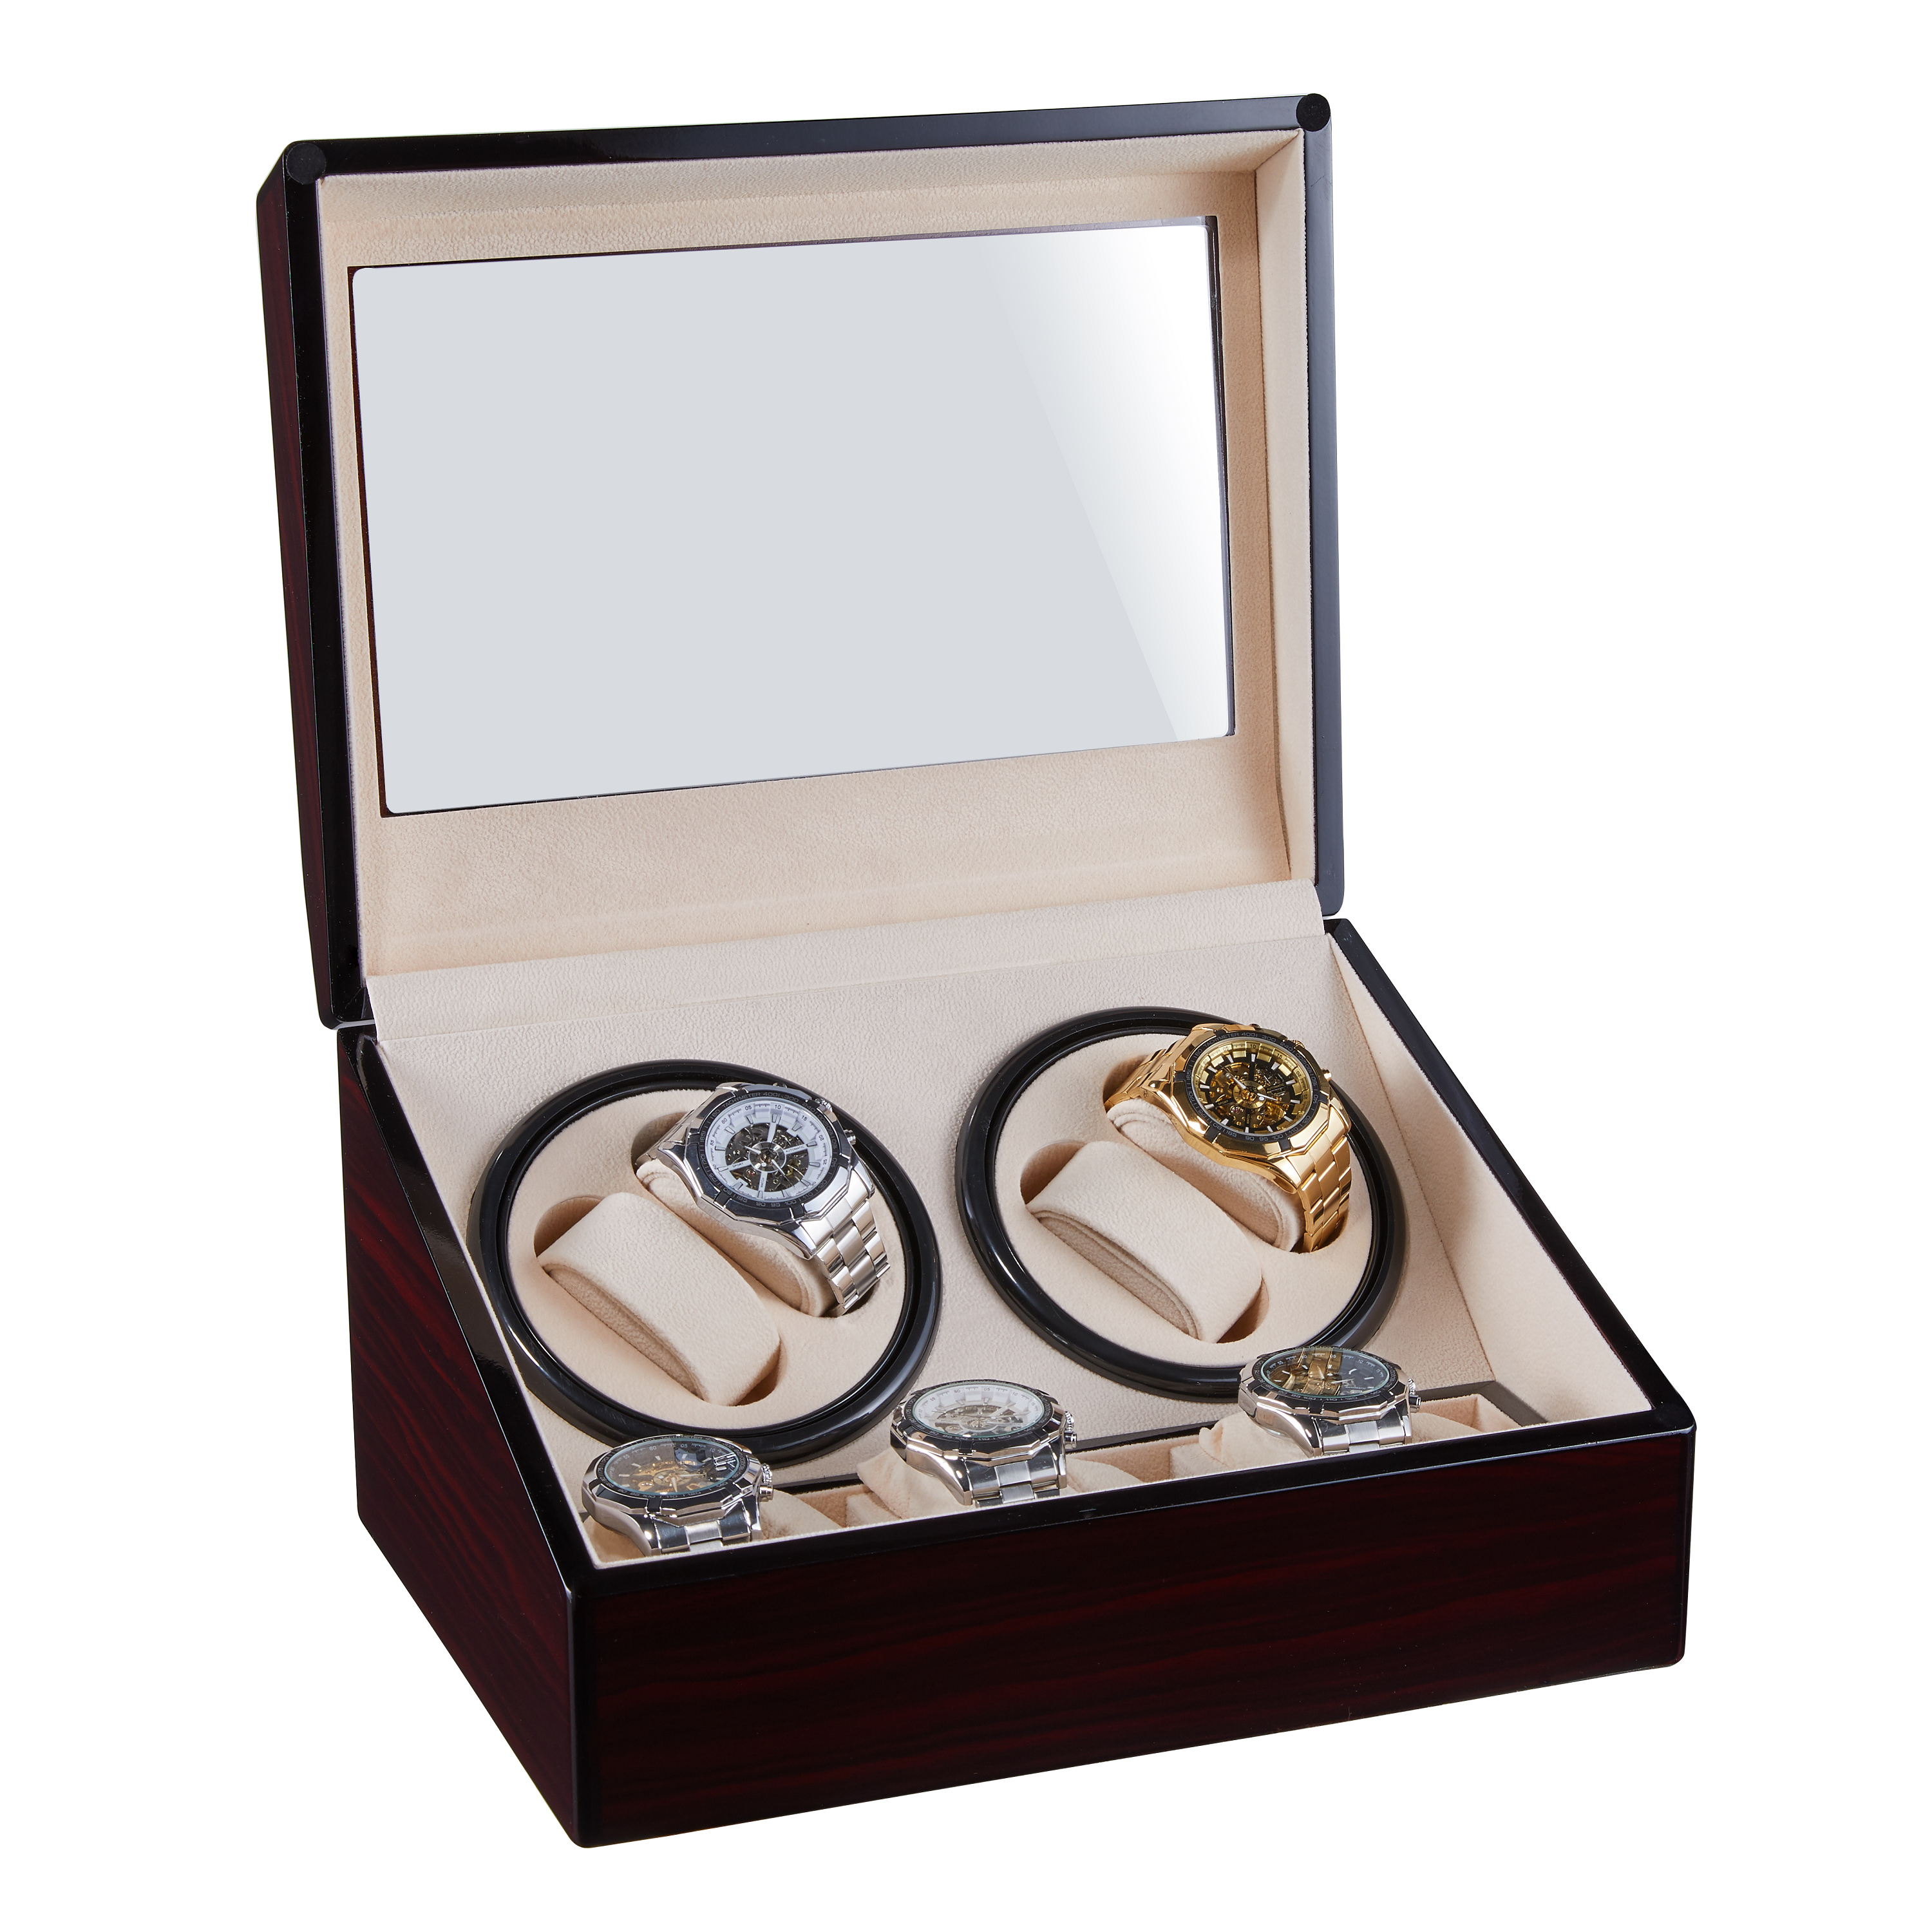 Watches Winding Storage Box Winder Shake Jewelry Collection Holder Wooden 4 +6 Automatic Display Double Head Silent Motor